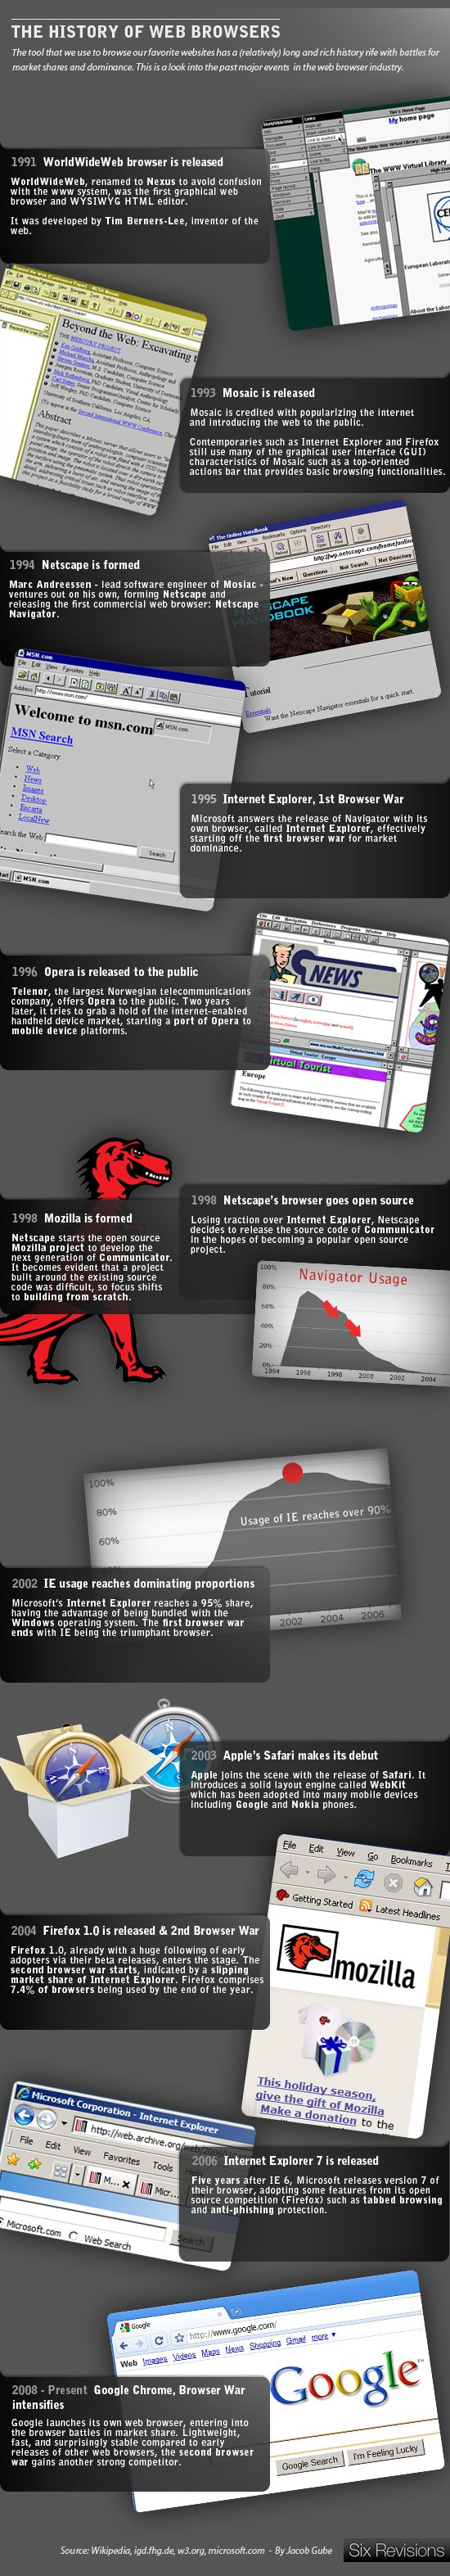 History of Web Browsers